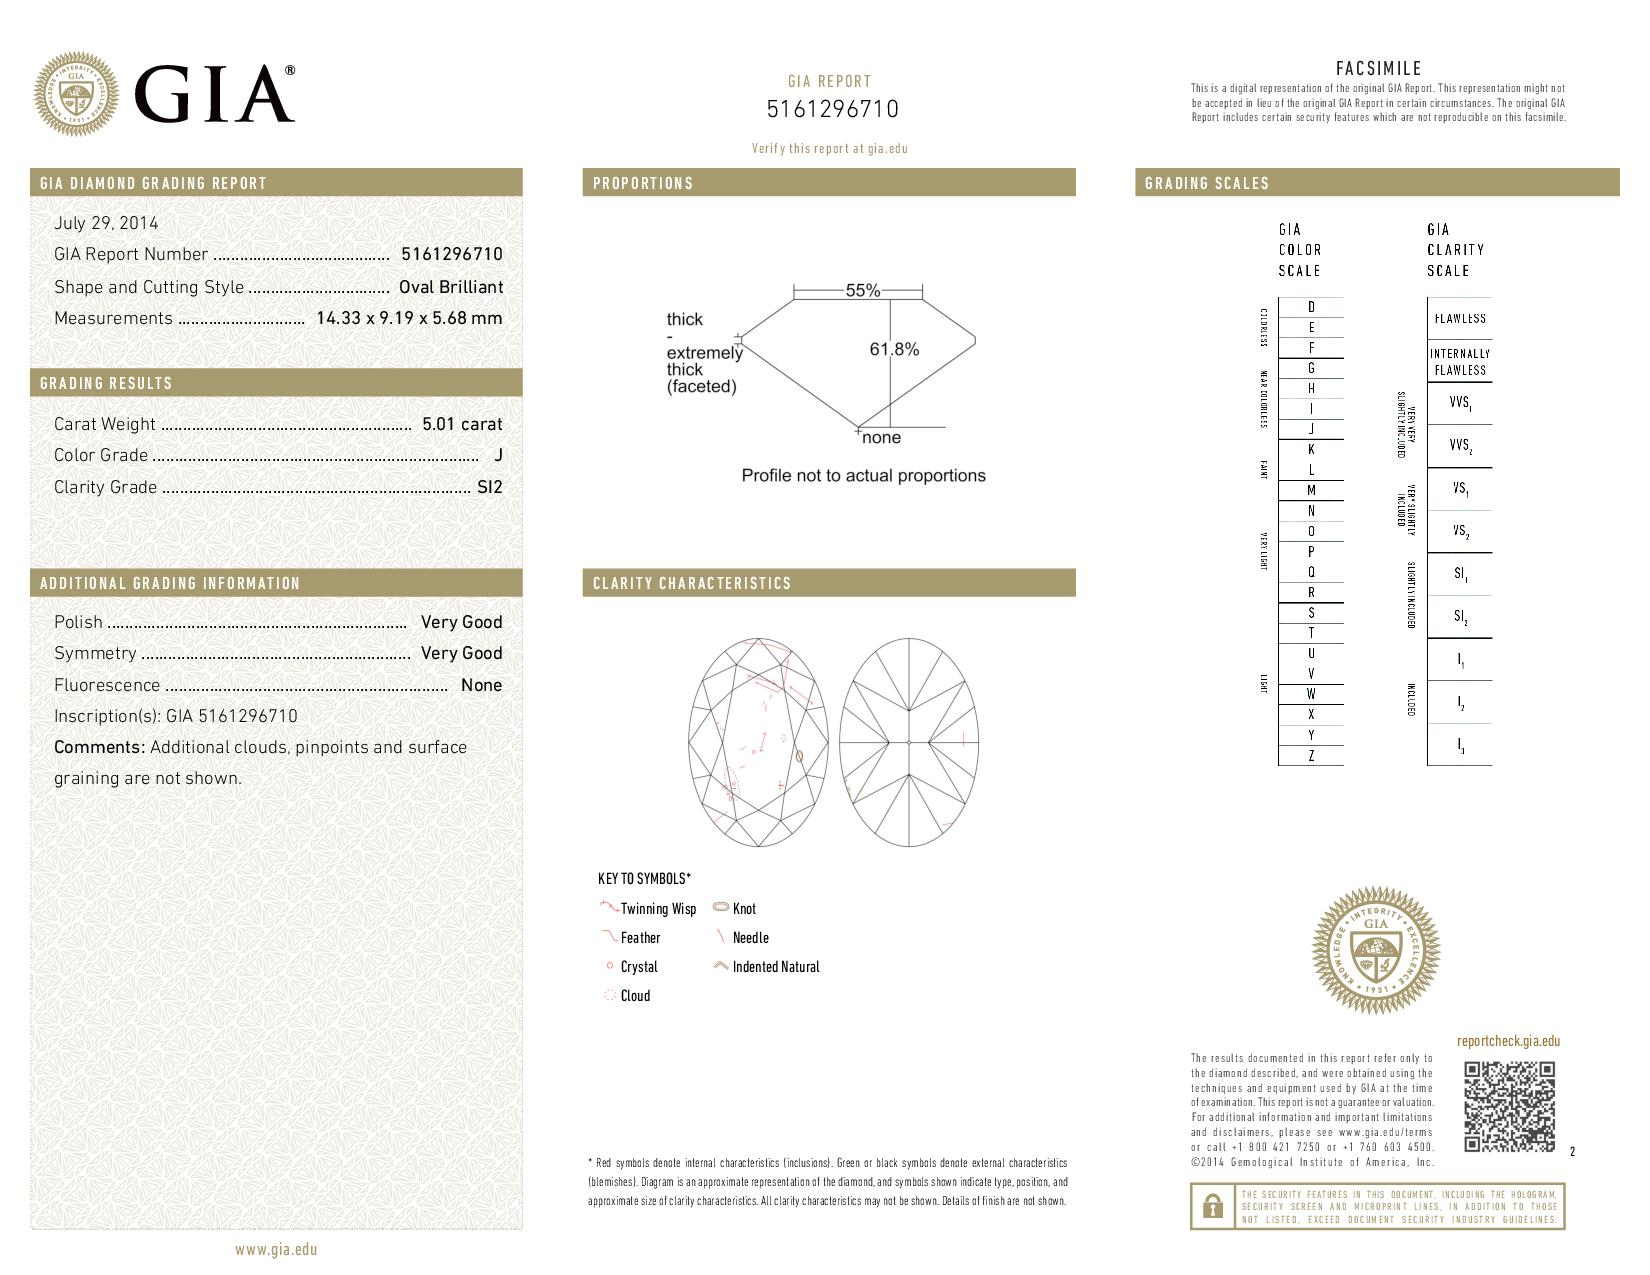 This is a 5.01 carat oval shape, J color, SI2 clarity natural diamond accompanied by a GIA grading report.